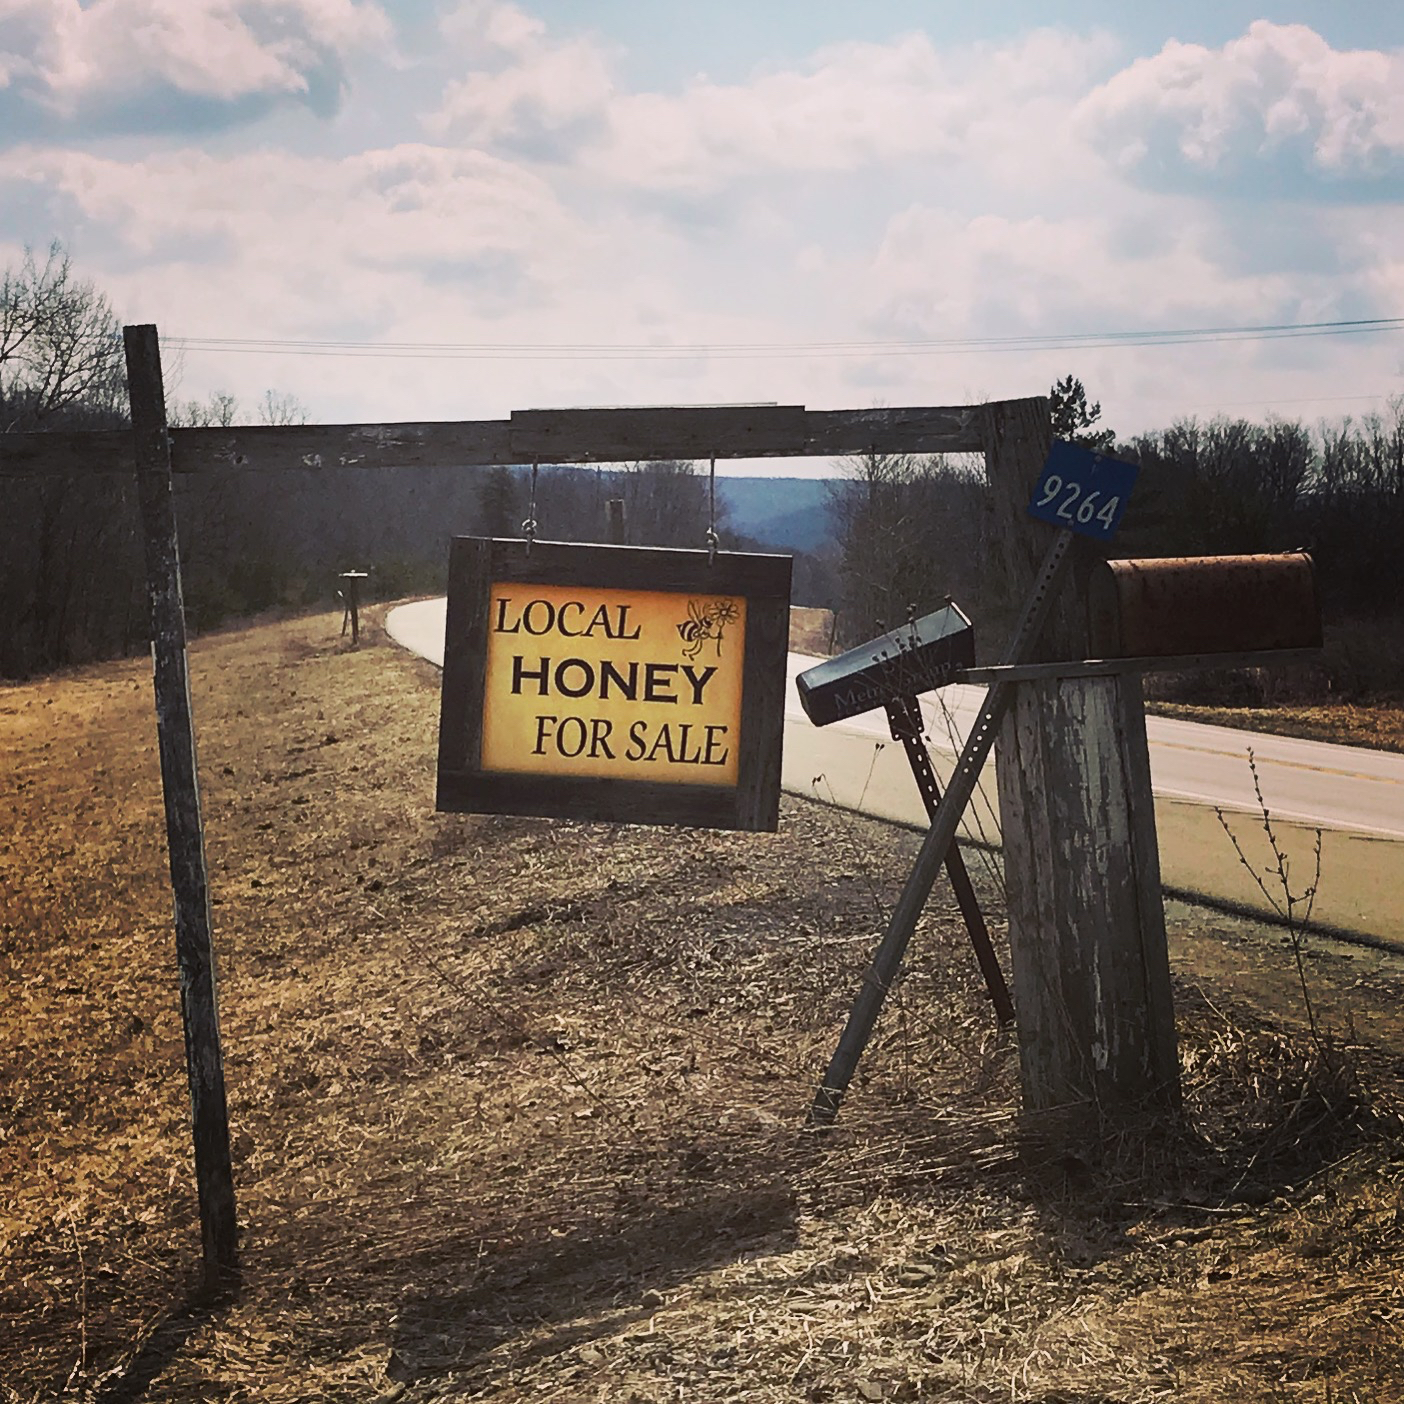 So far we have used over half a ton of local honey to make our One Foot Cock Krupnik - that is a lot of honey!